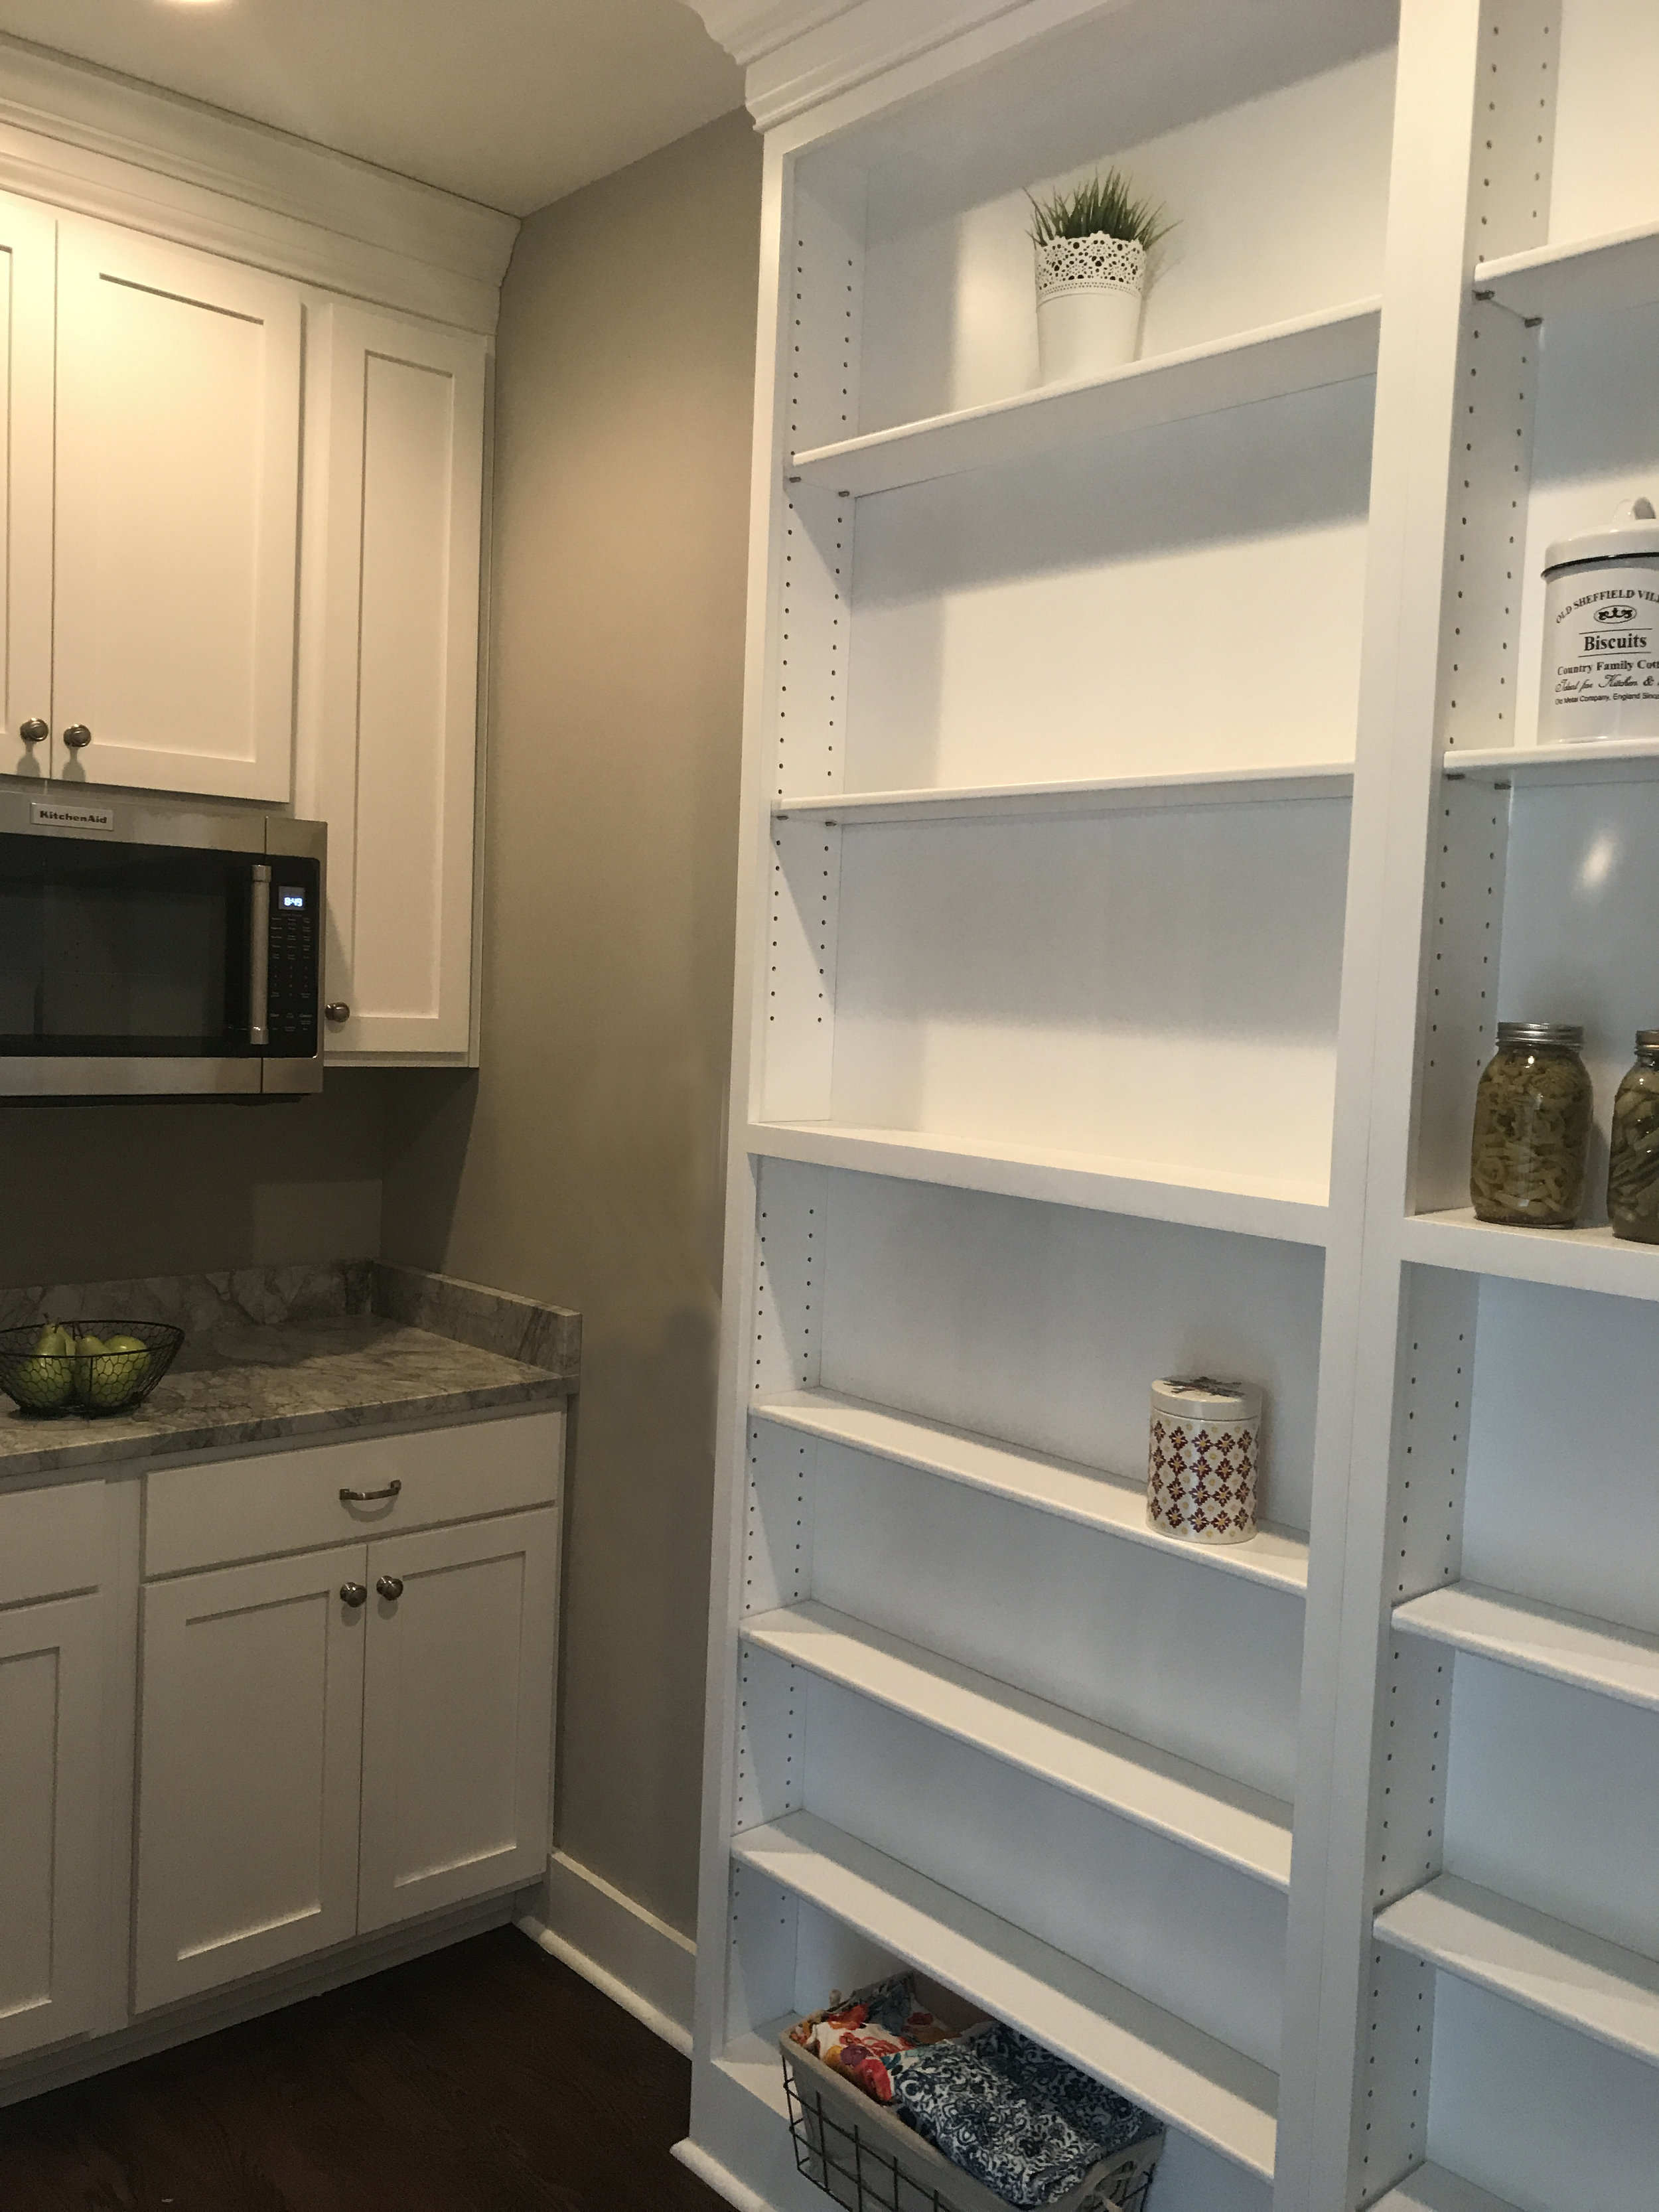 The cabinets and shelving in this beautiful pantry were all custom made.